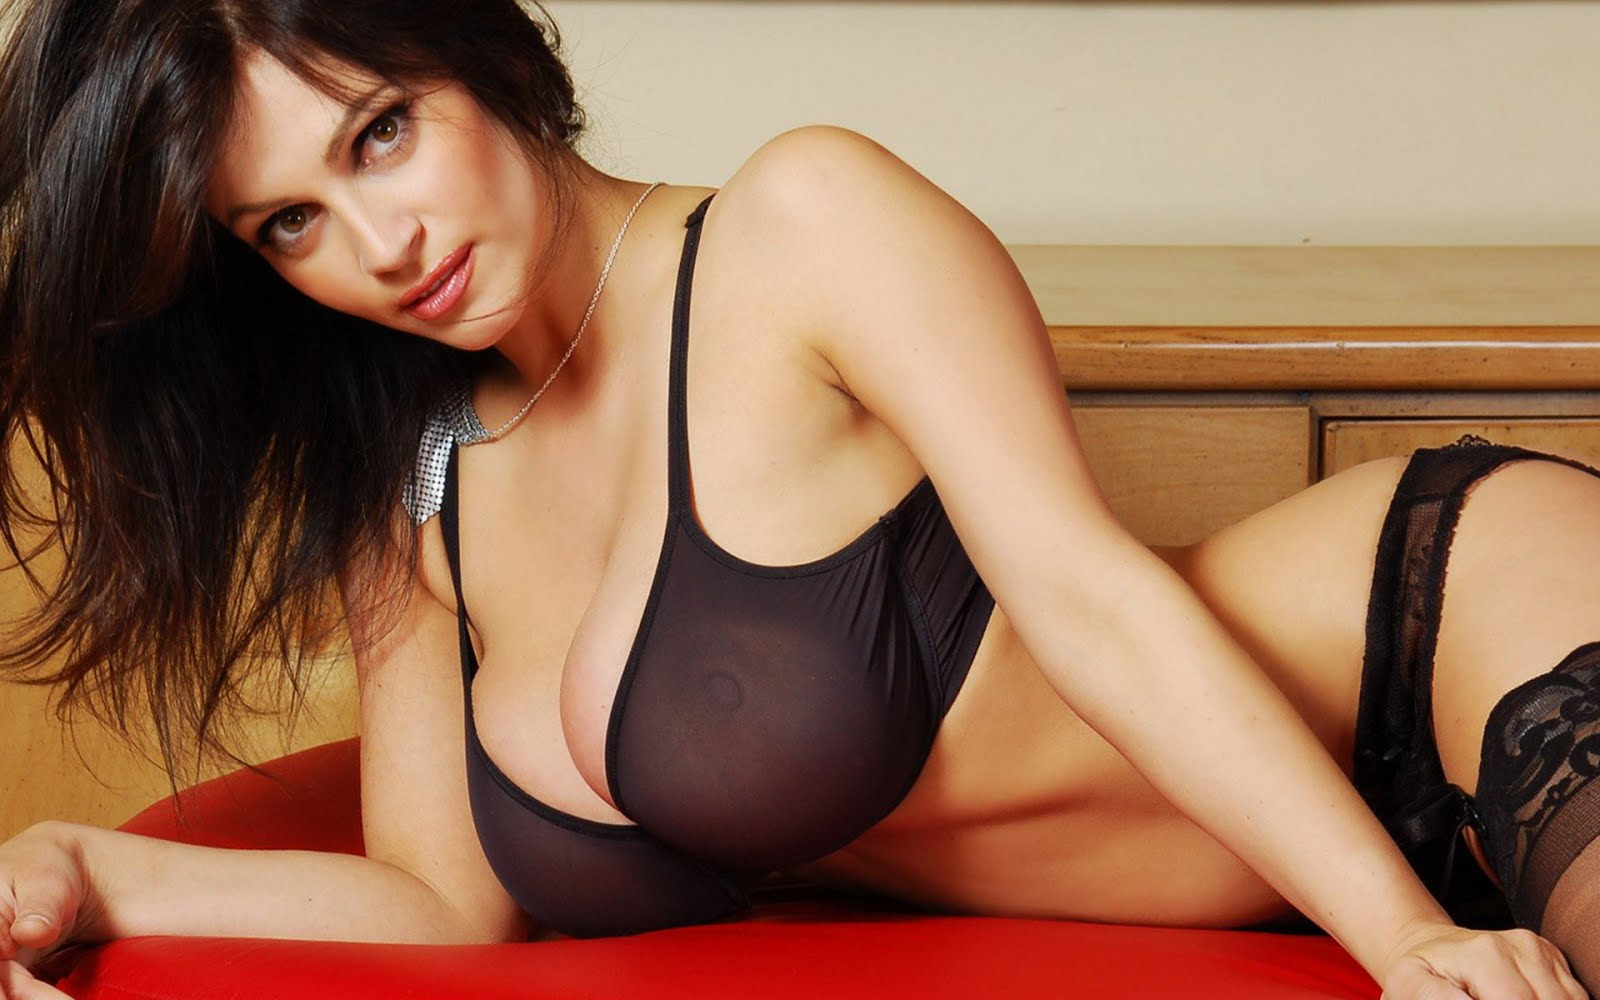 Elite dating agency manchester-in-Keogh